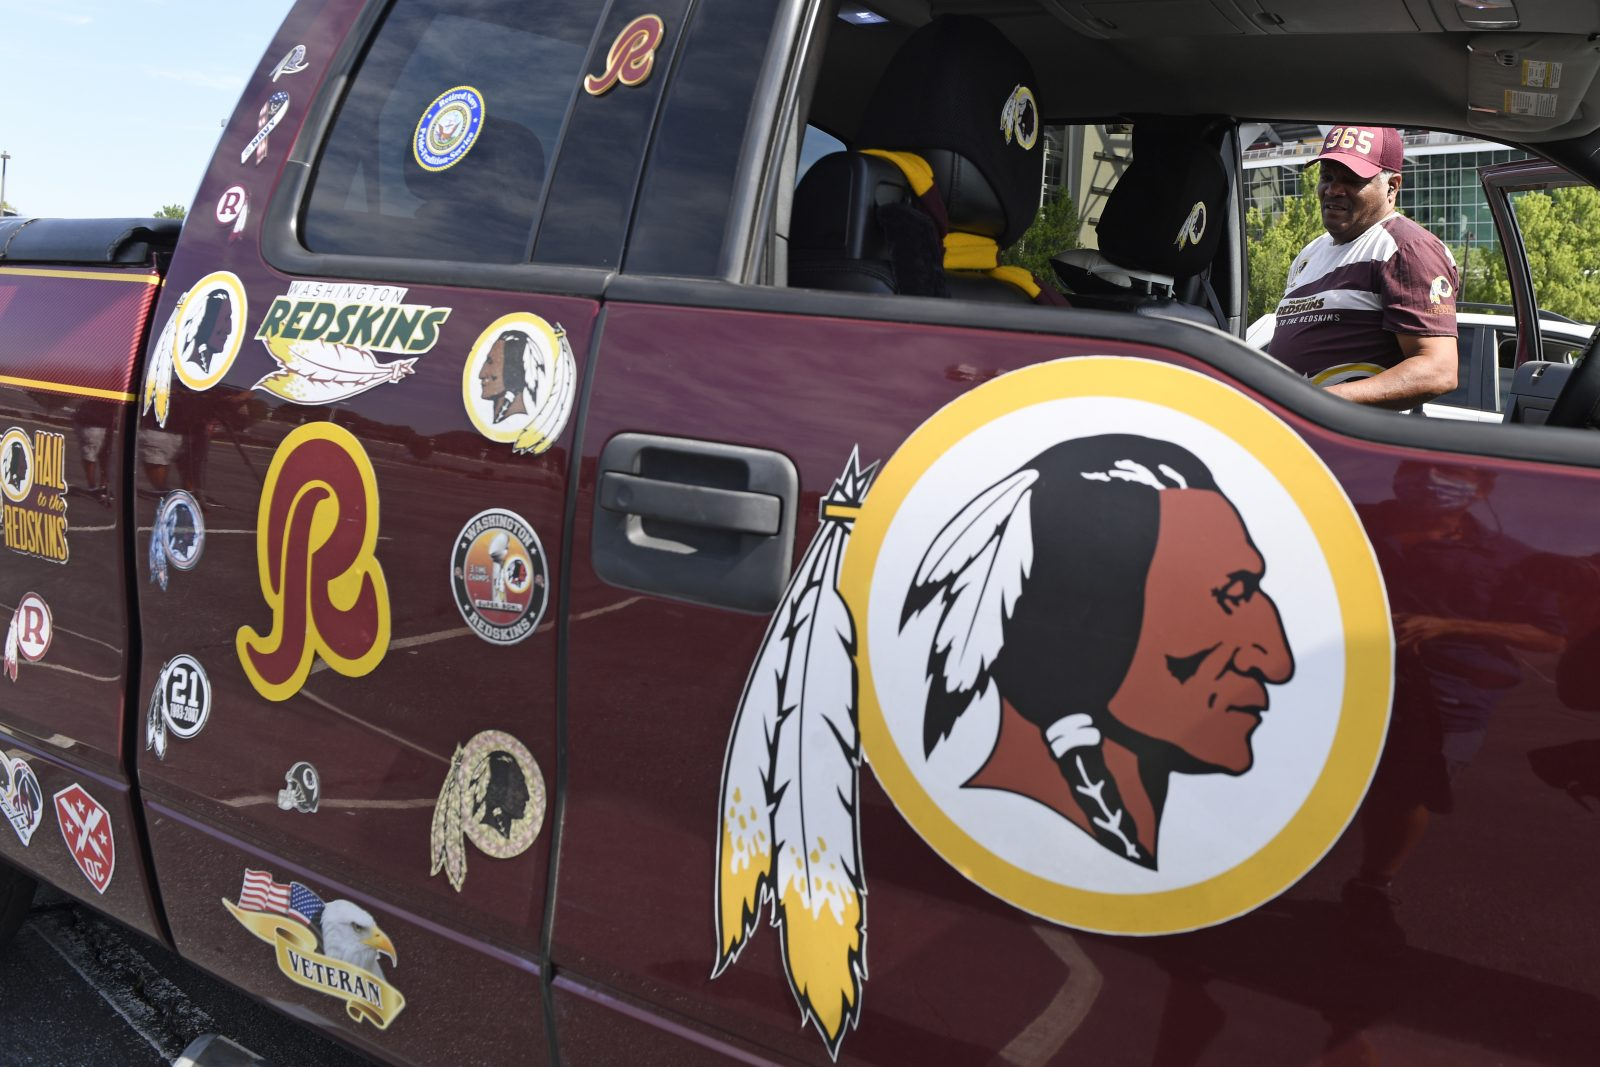 Das bisherige Logo der Washington Redskins prangt auf einem Auto Foto: picture alliance / AP Photo